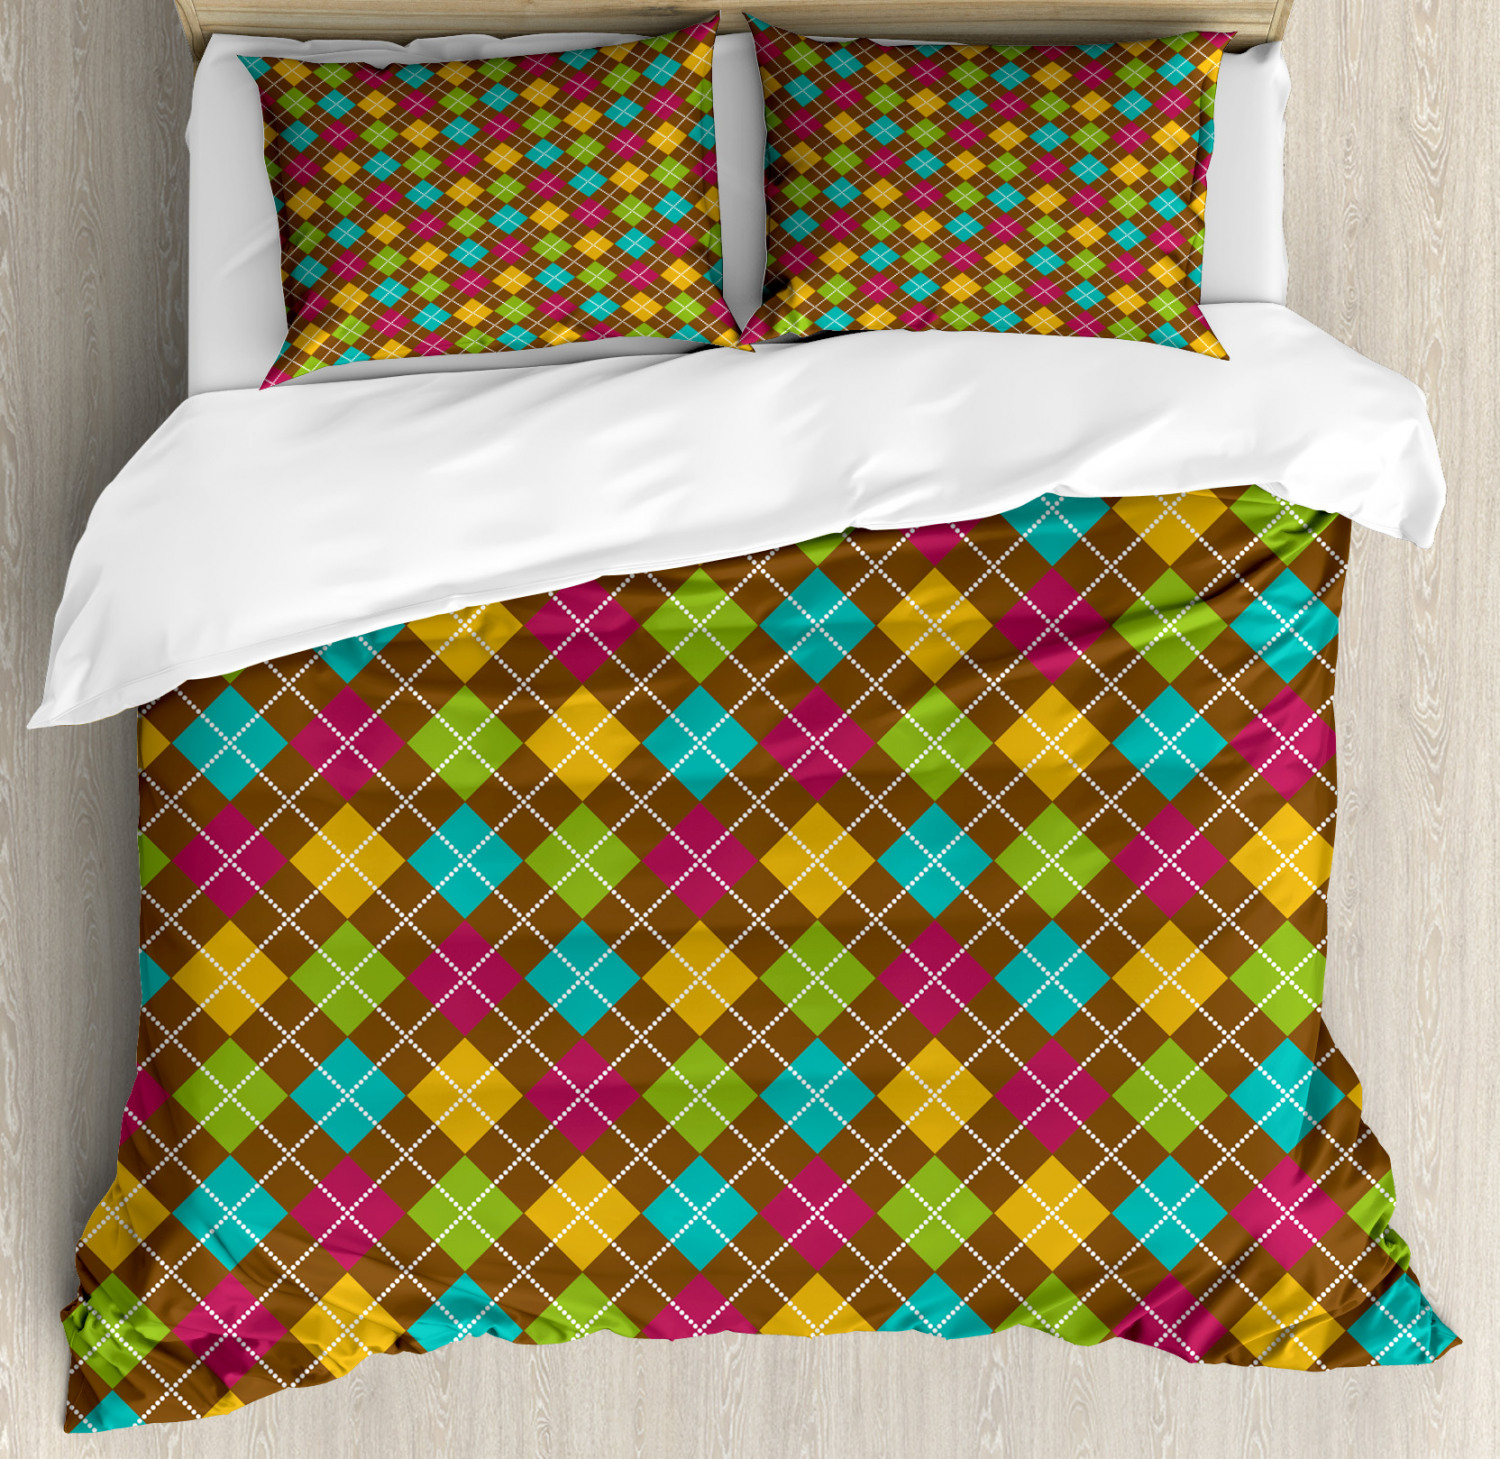 Geometric Duvet Cover Set with Pillow Shams Bold Argyle Pattern Print